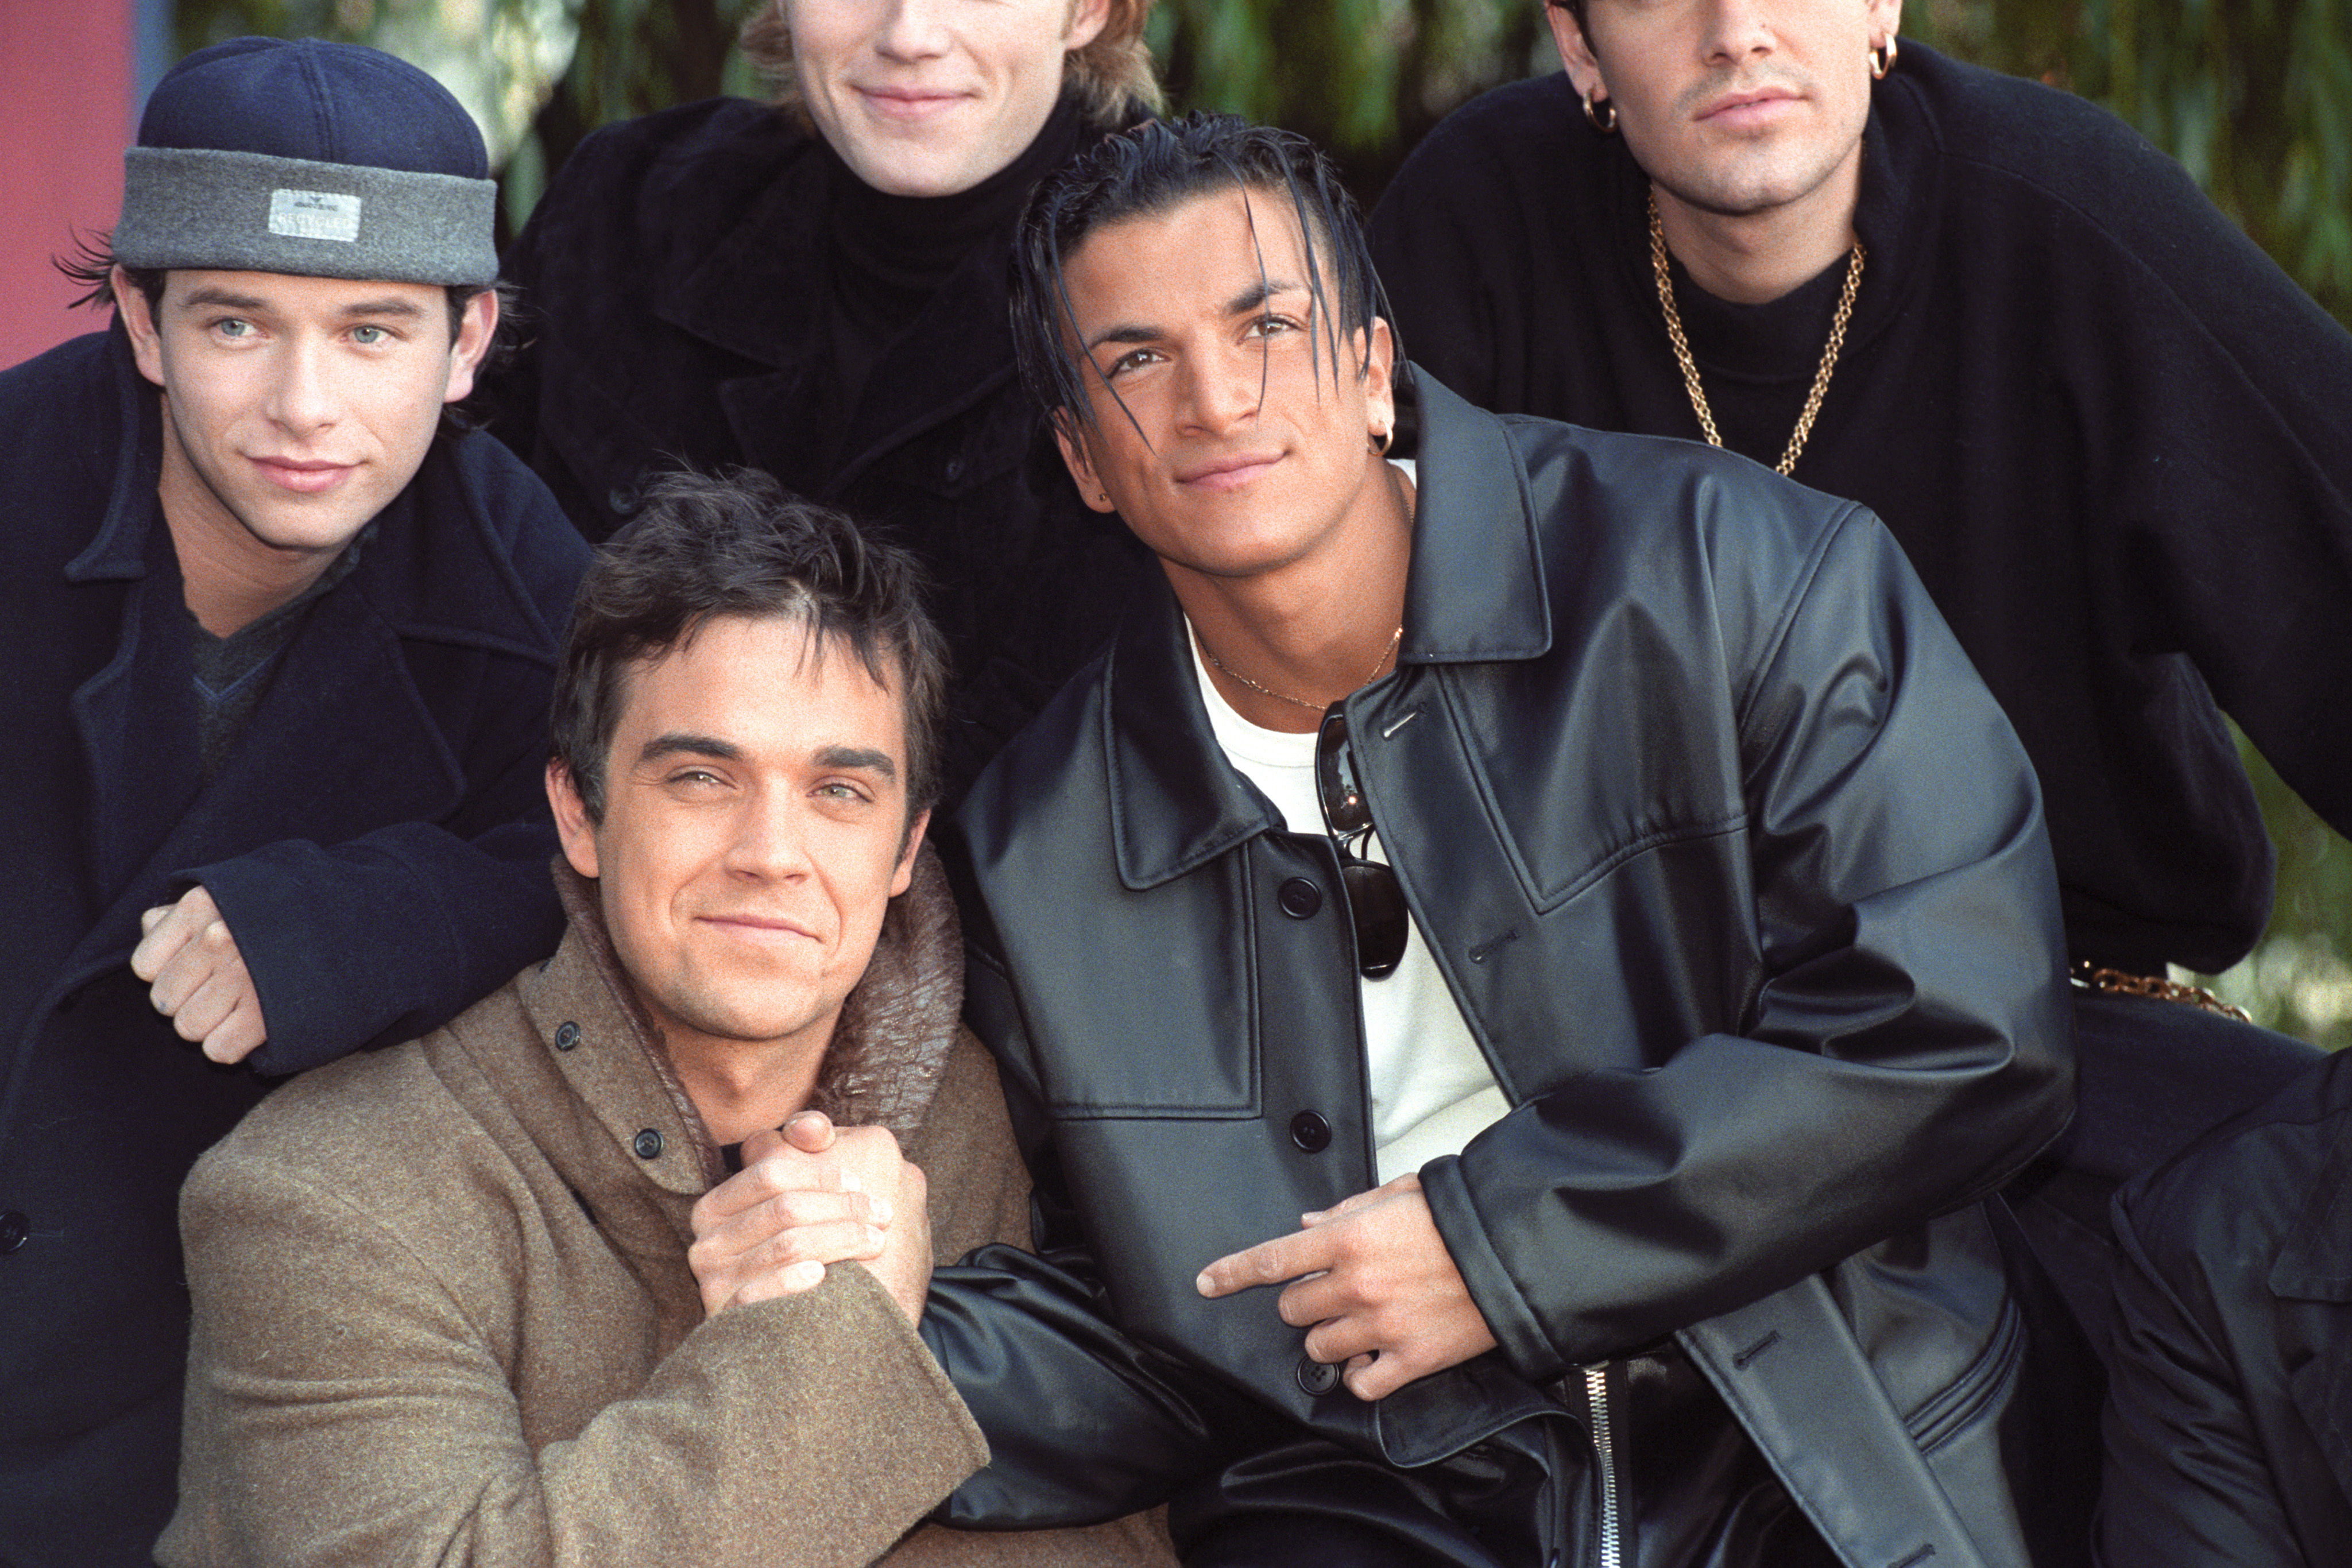 Peter Andre and Robbie Williams